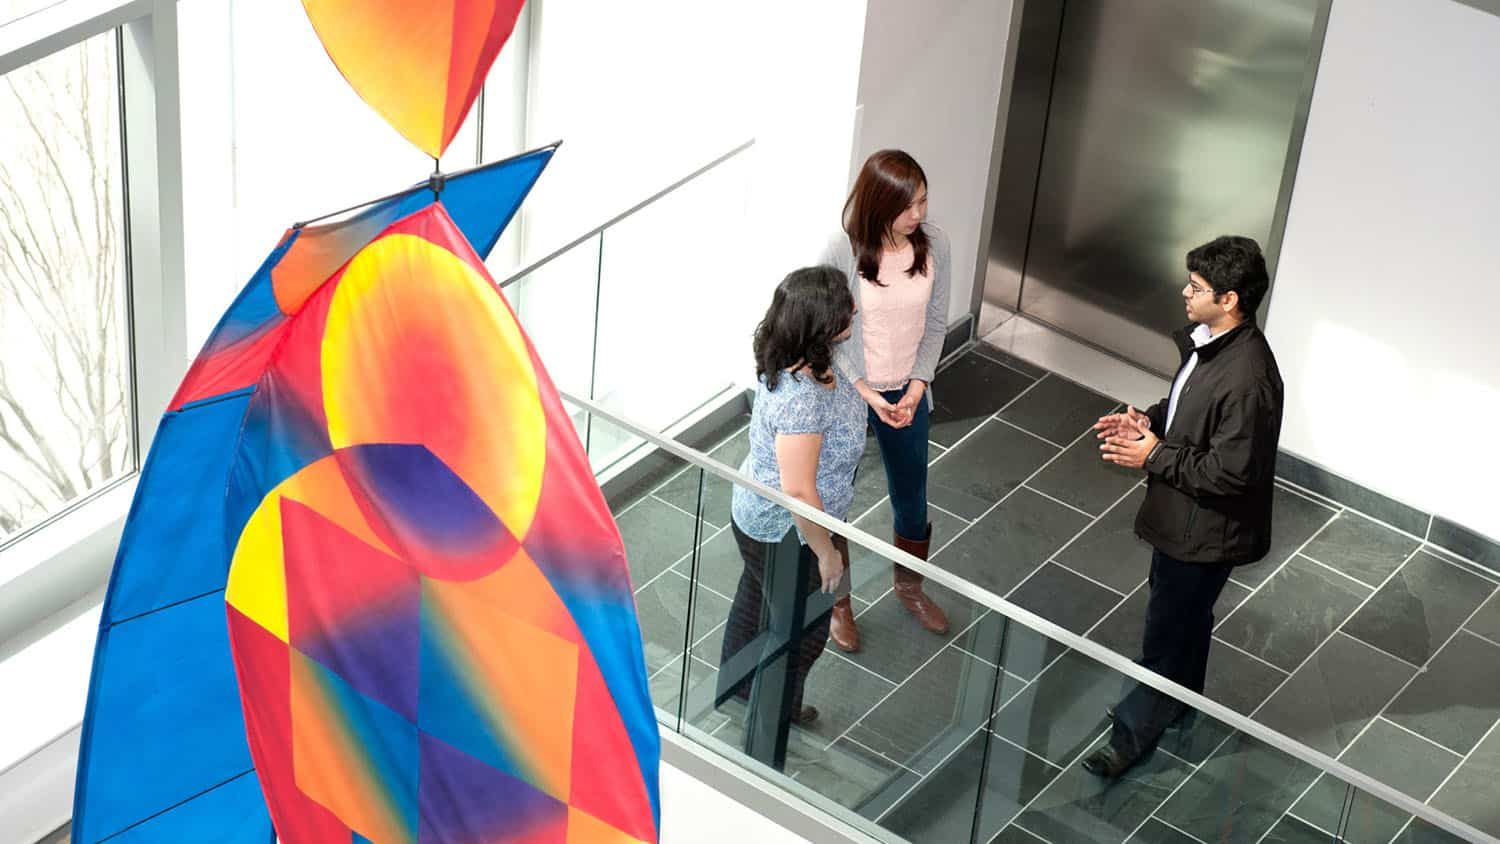 Three people talk in the Atrium of SAS Hall with a colorful art installation in the foreground